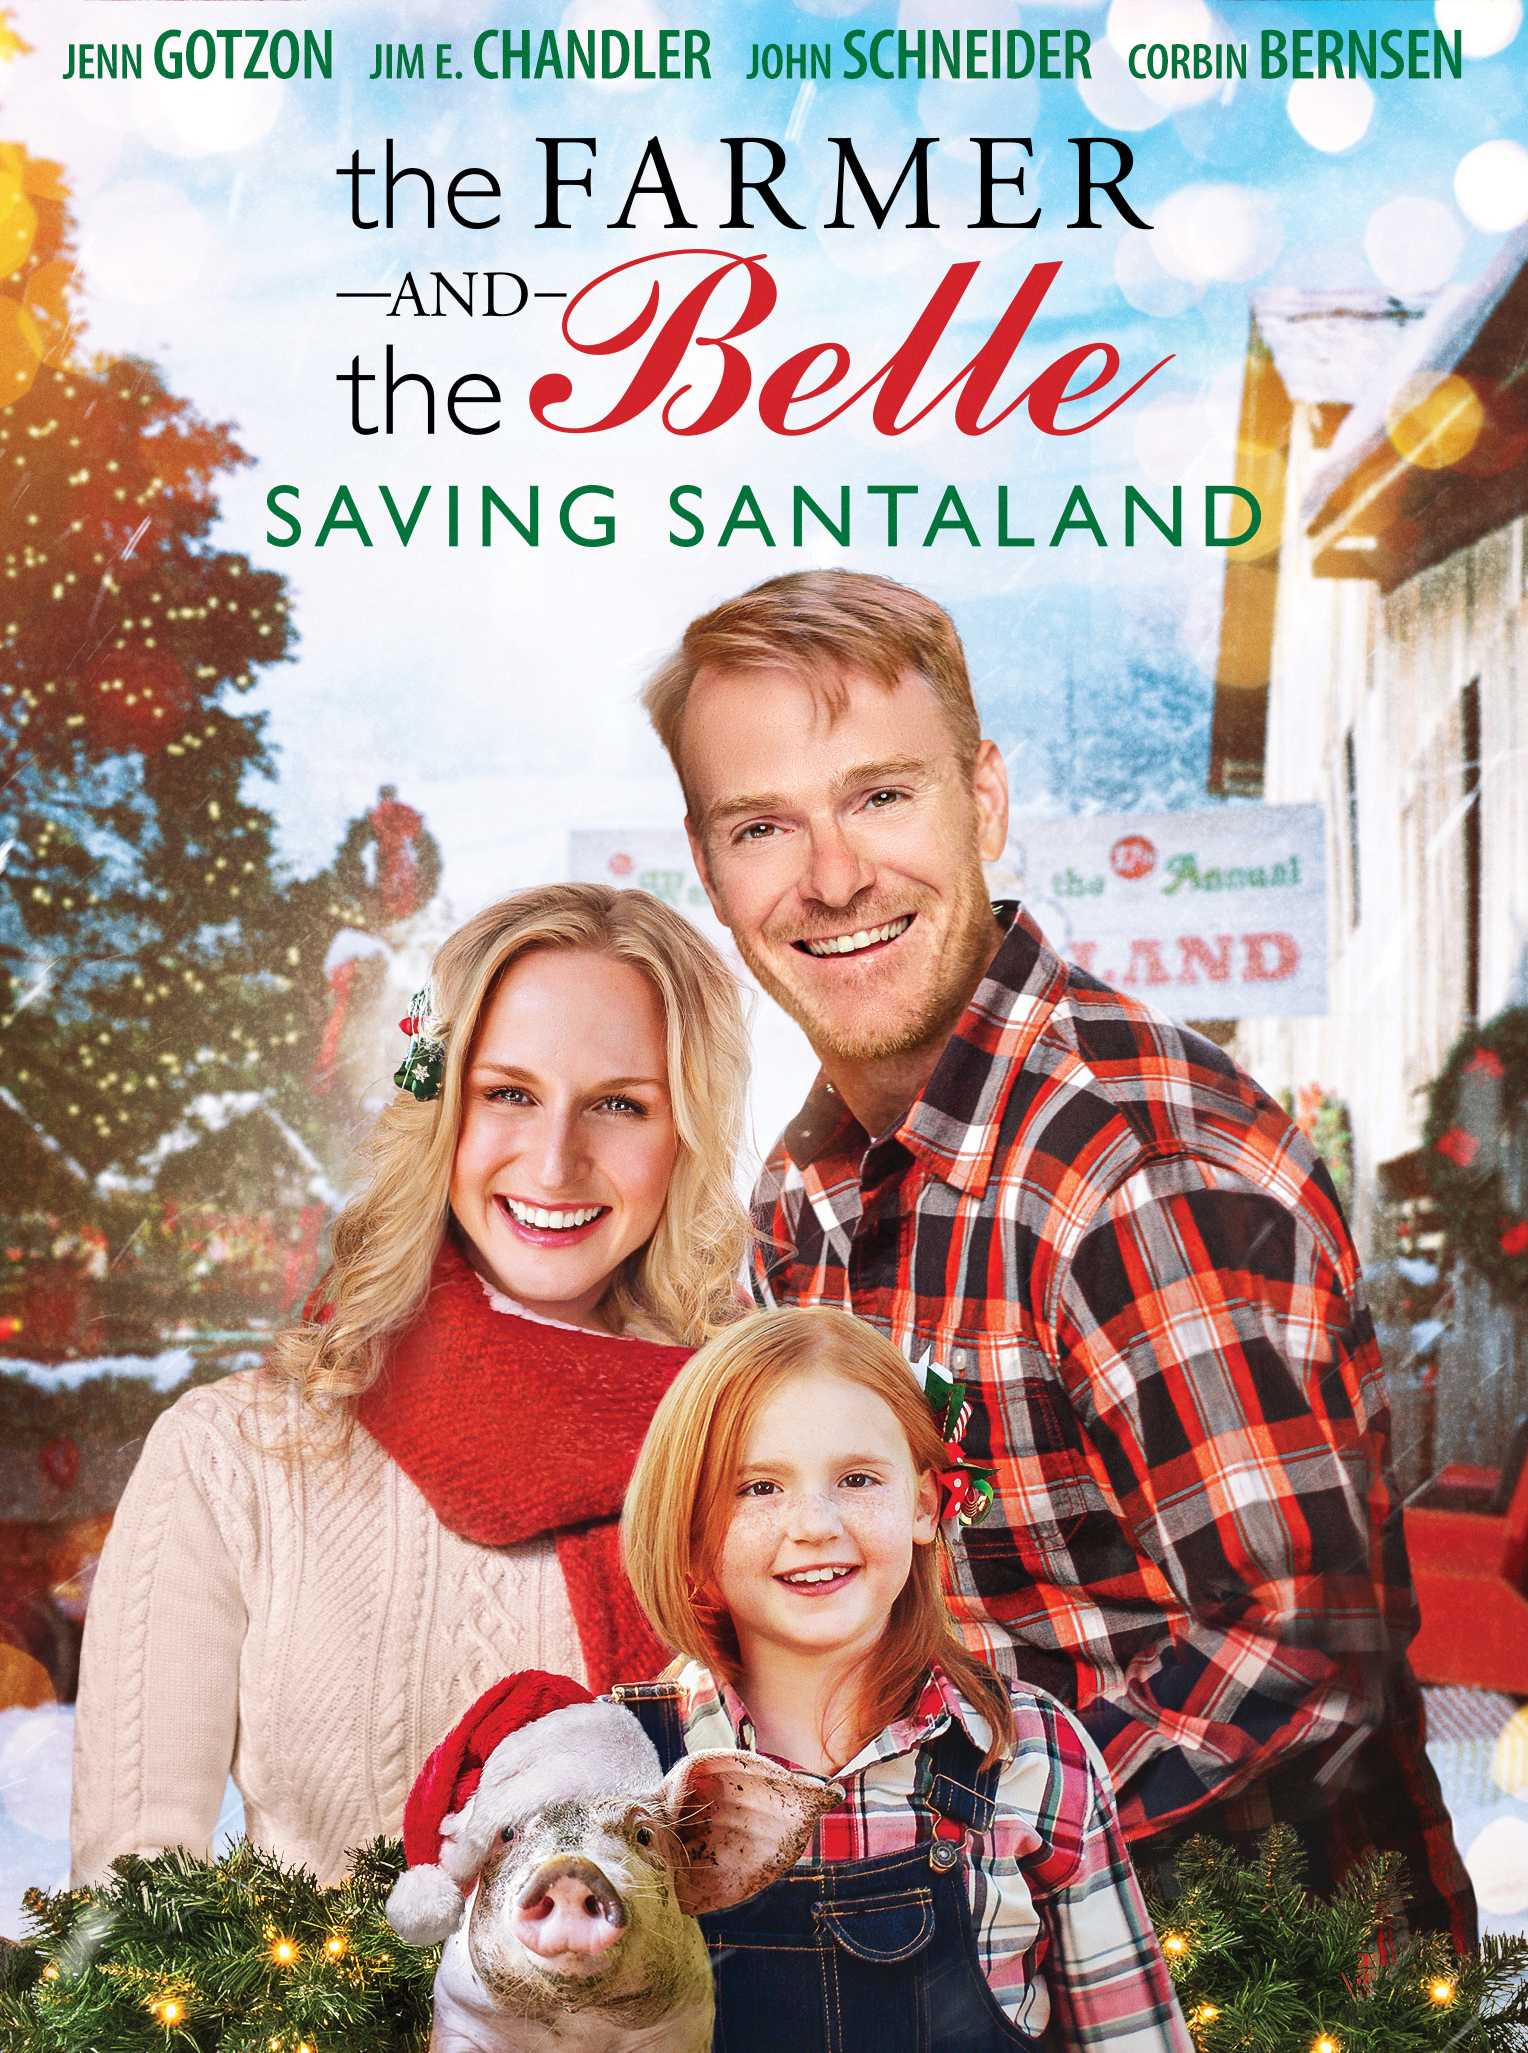 The Farmer and the Belle: Saving Santaland hd on soap2day